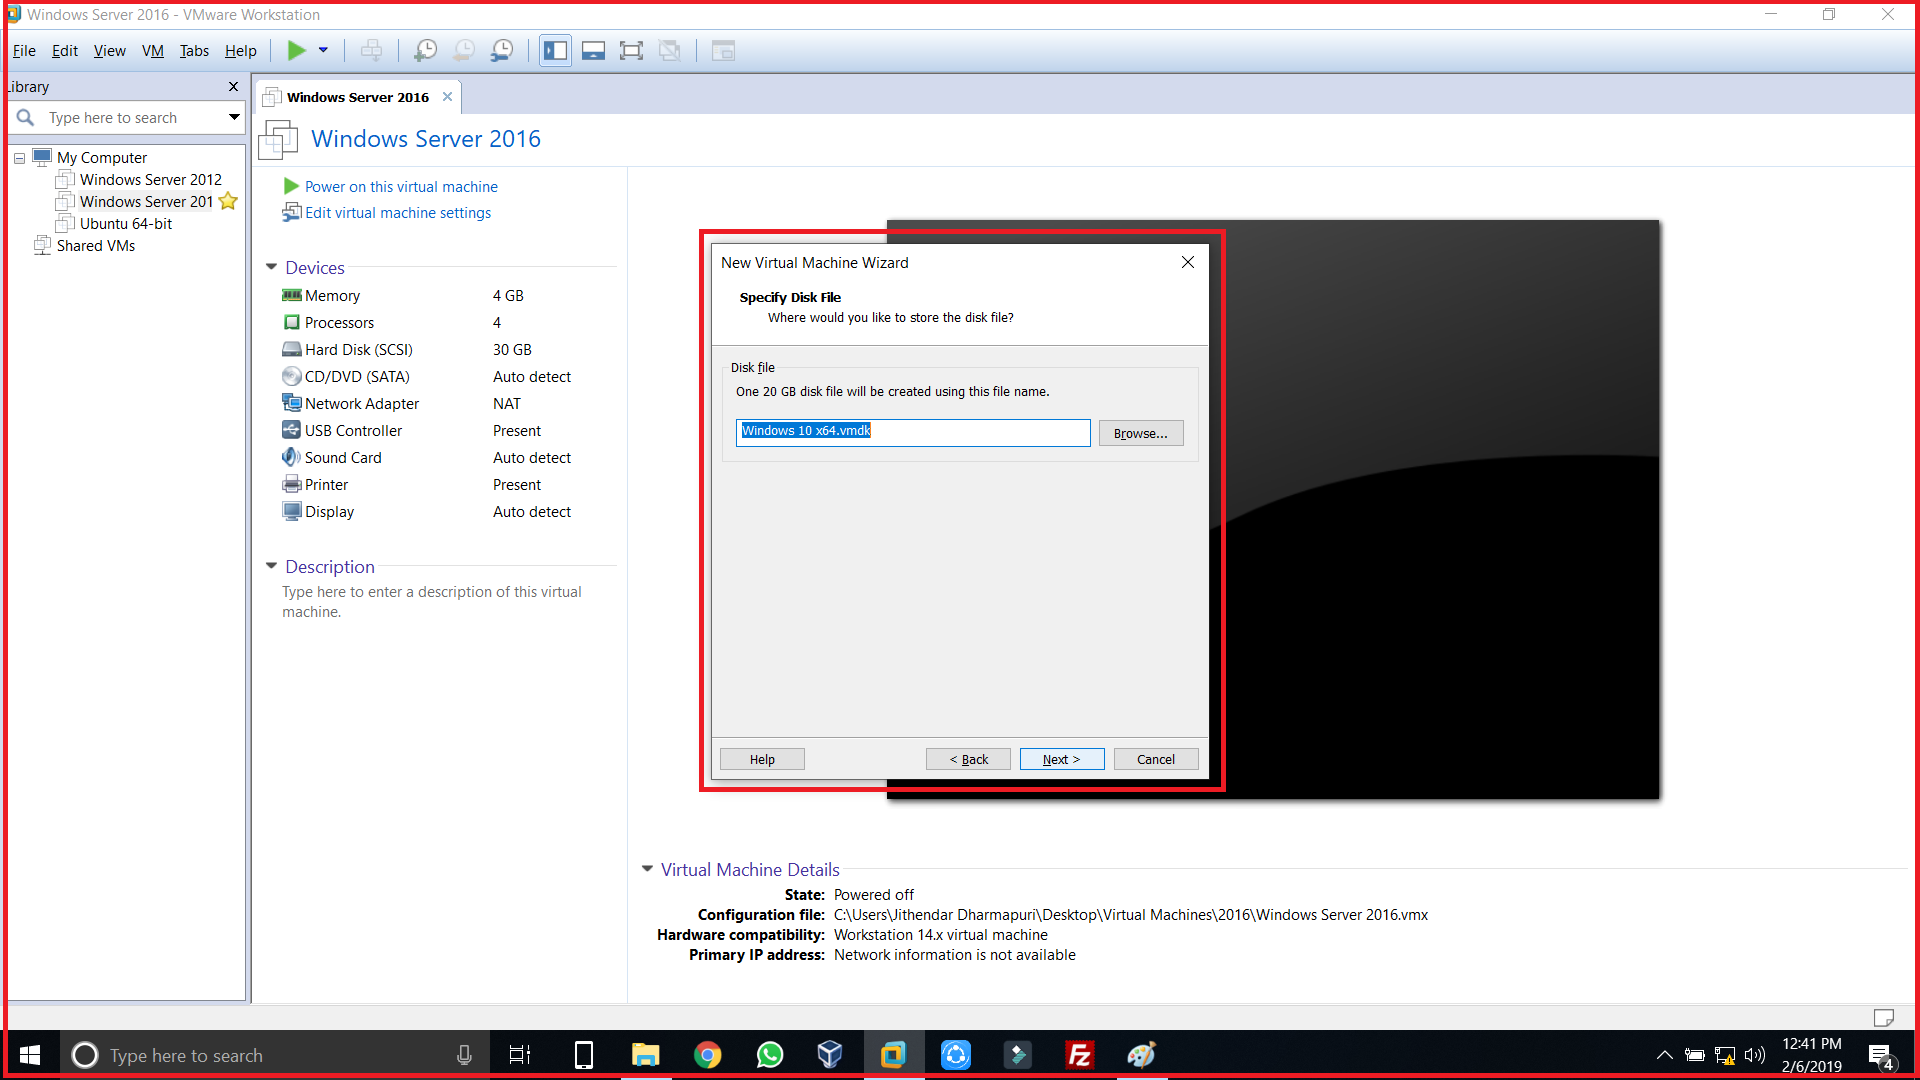 Specify disk file for your Virtual machine